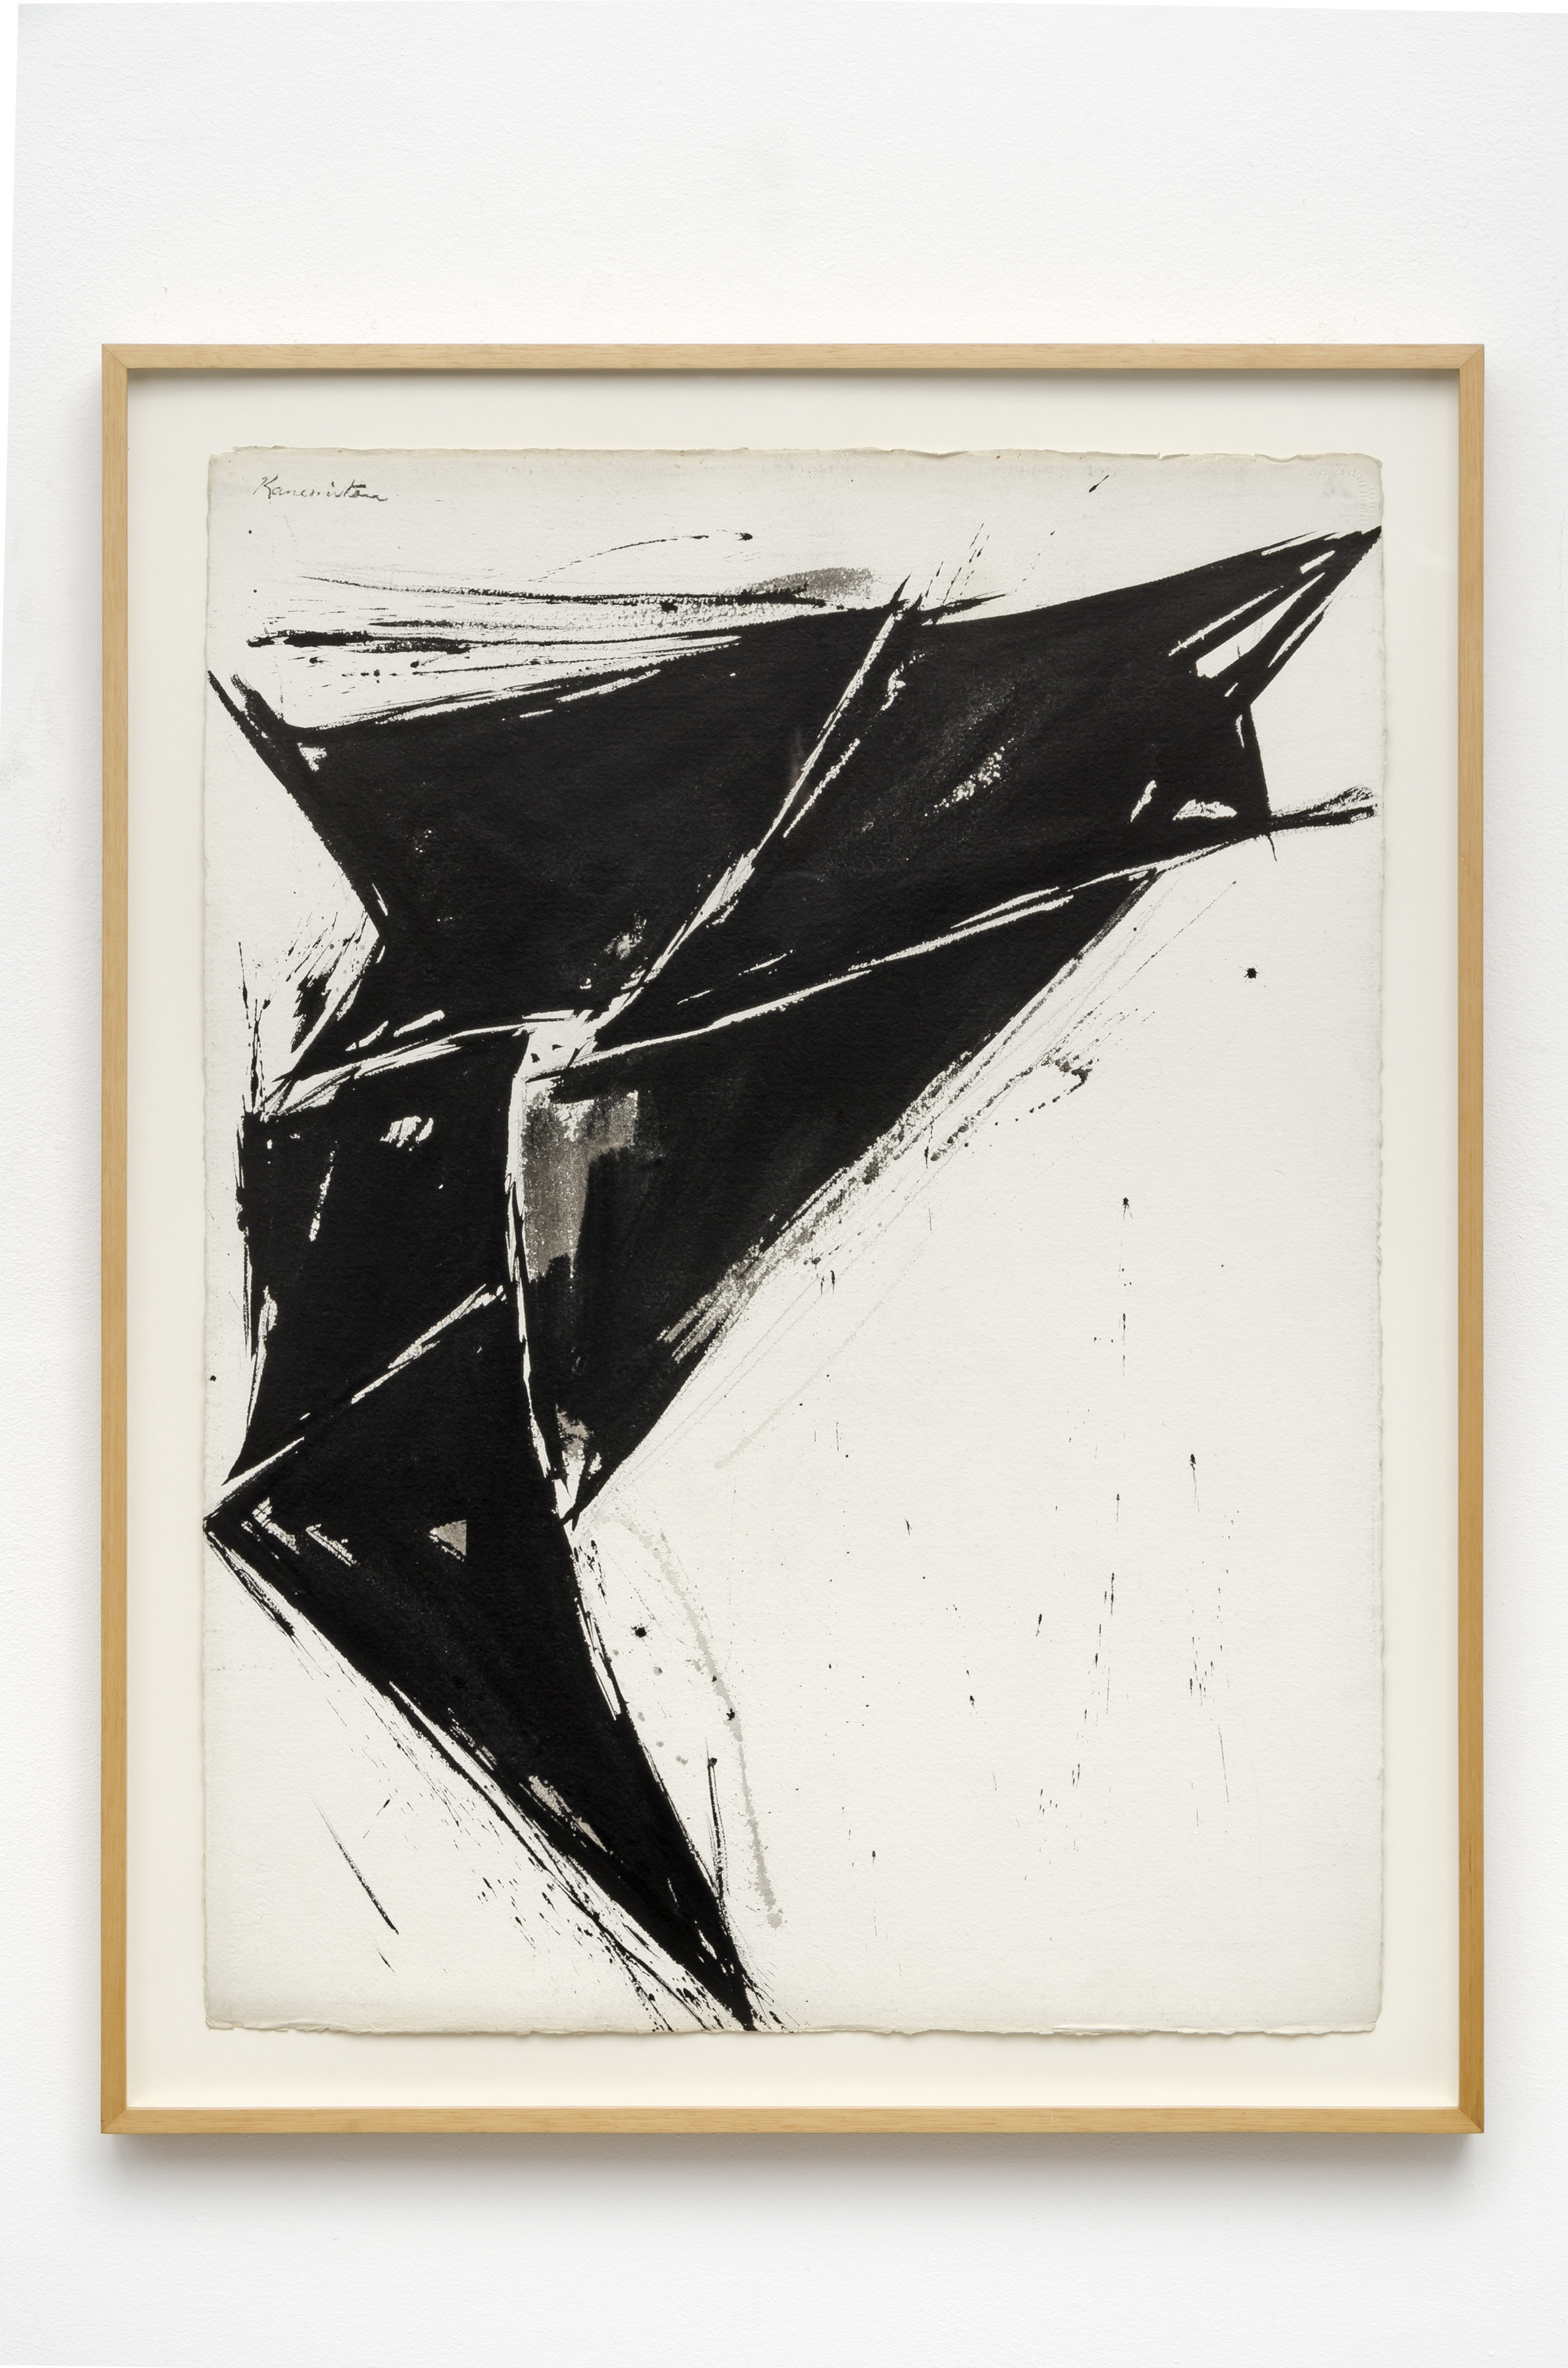 #10 , 1961 sumi ink on paper 30.5 x 22.5 inches; 77.5 x 57.1 centimeters